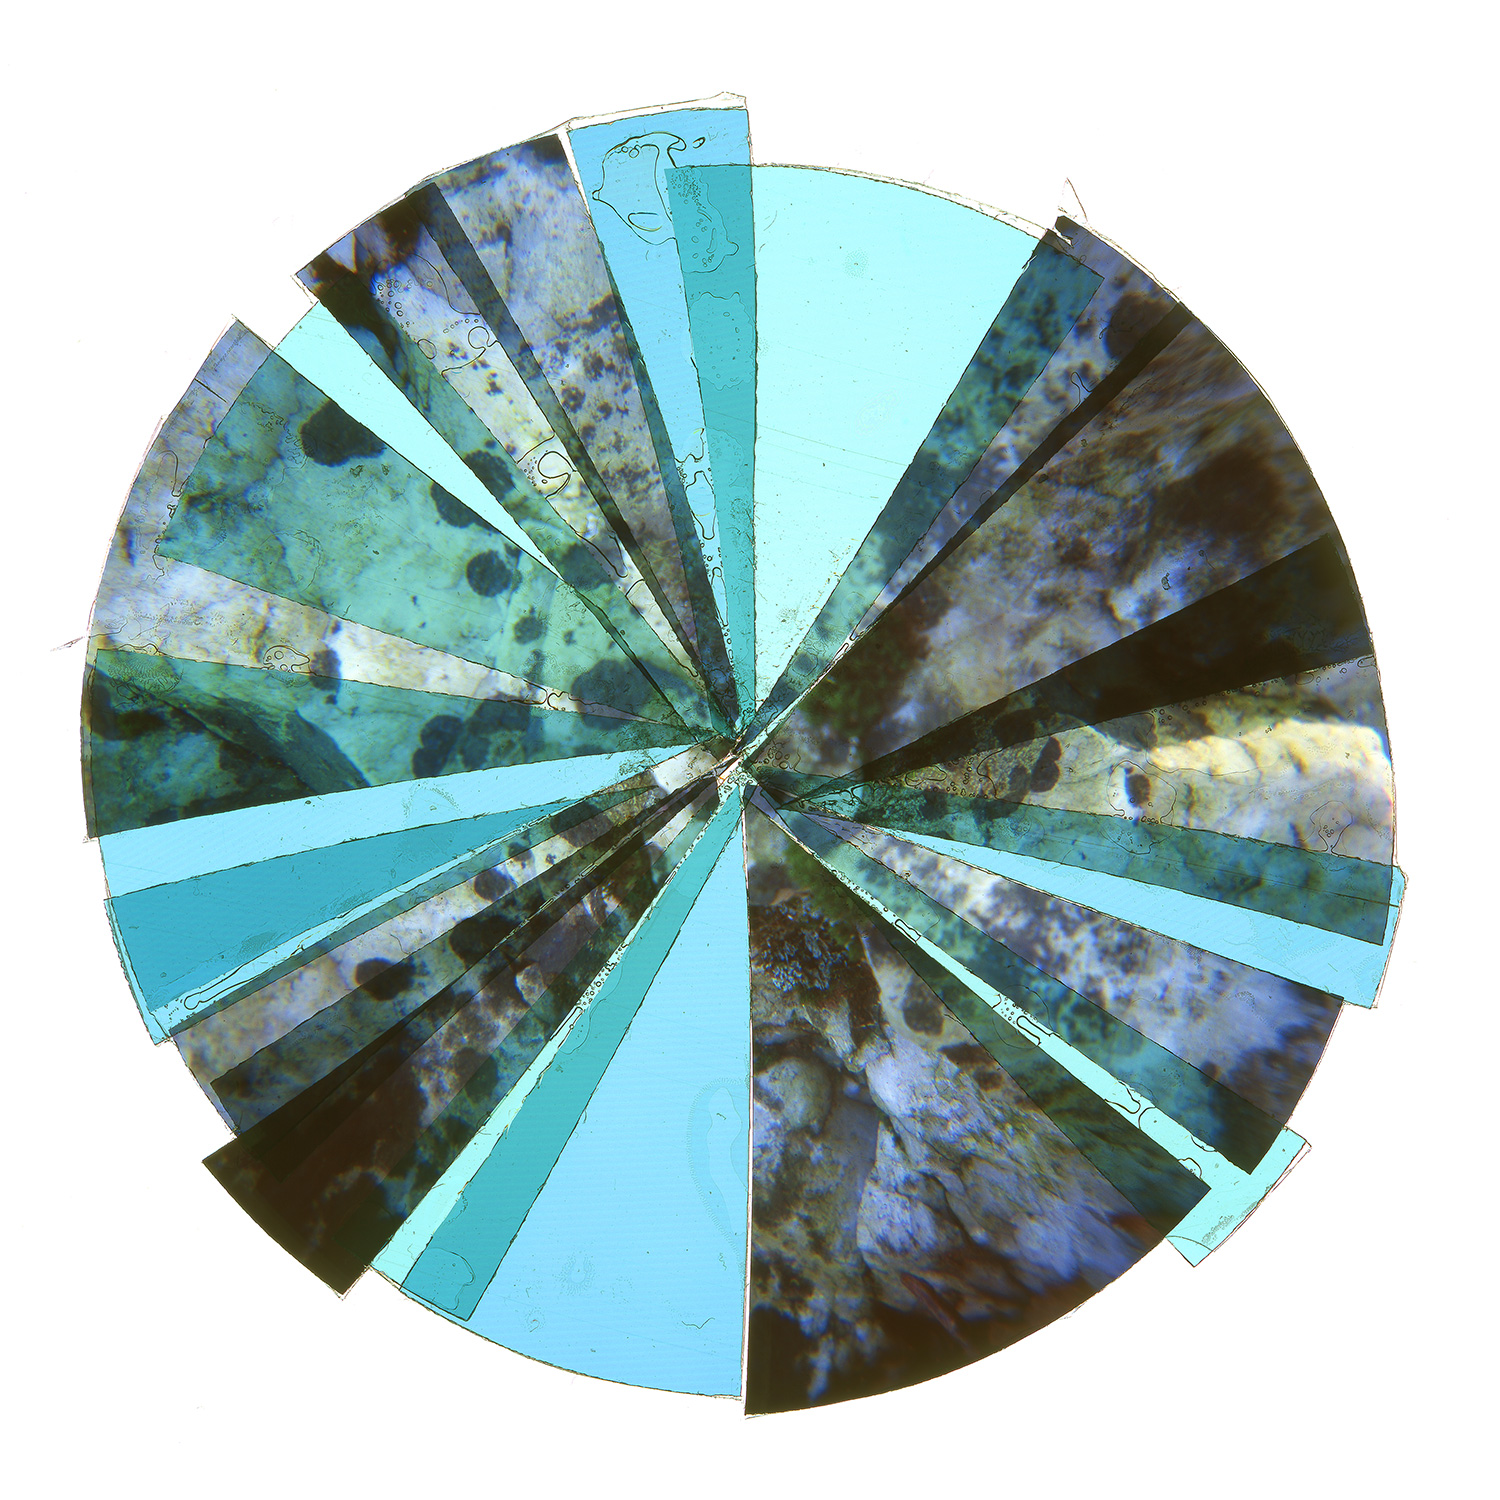 """RADIANCE 10 •  TWO EDITIONS: 36""""x36"""" & 45""""x45"""""""" • TRANSPARENCY FILM COMPOSITION"""